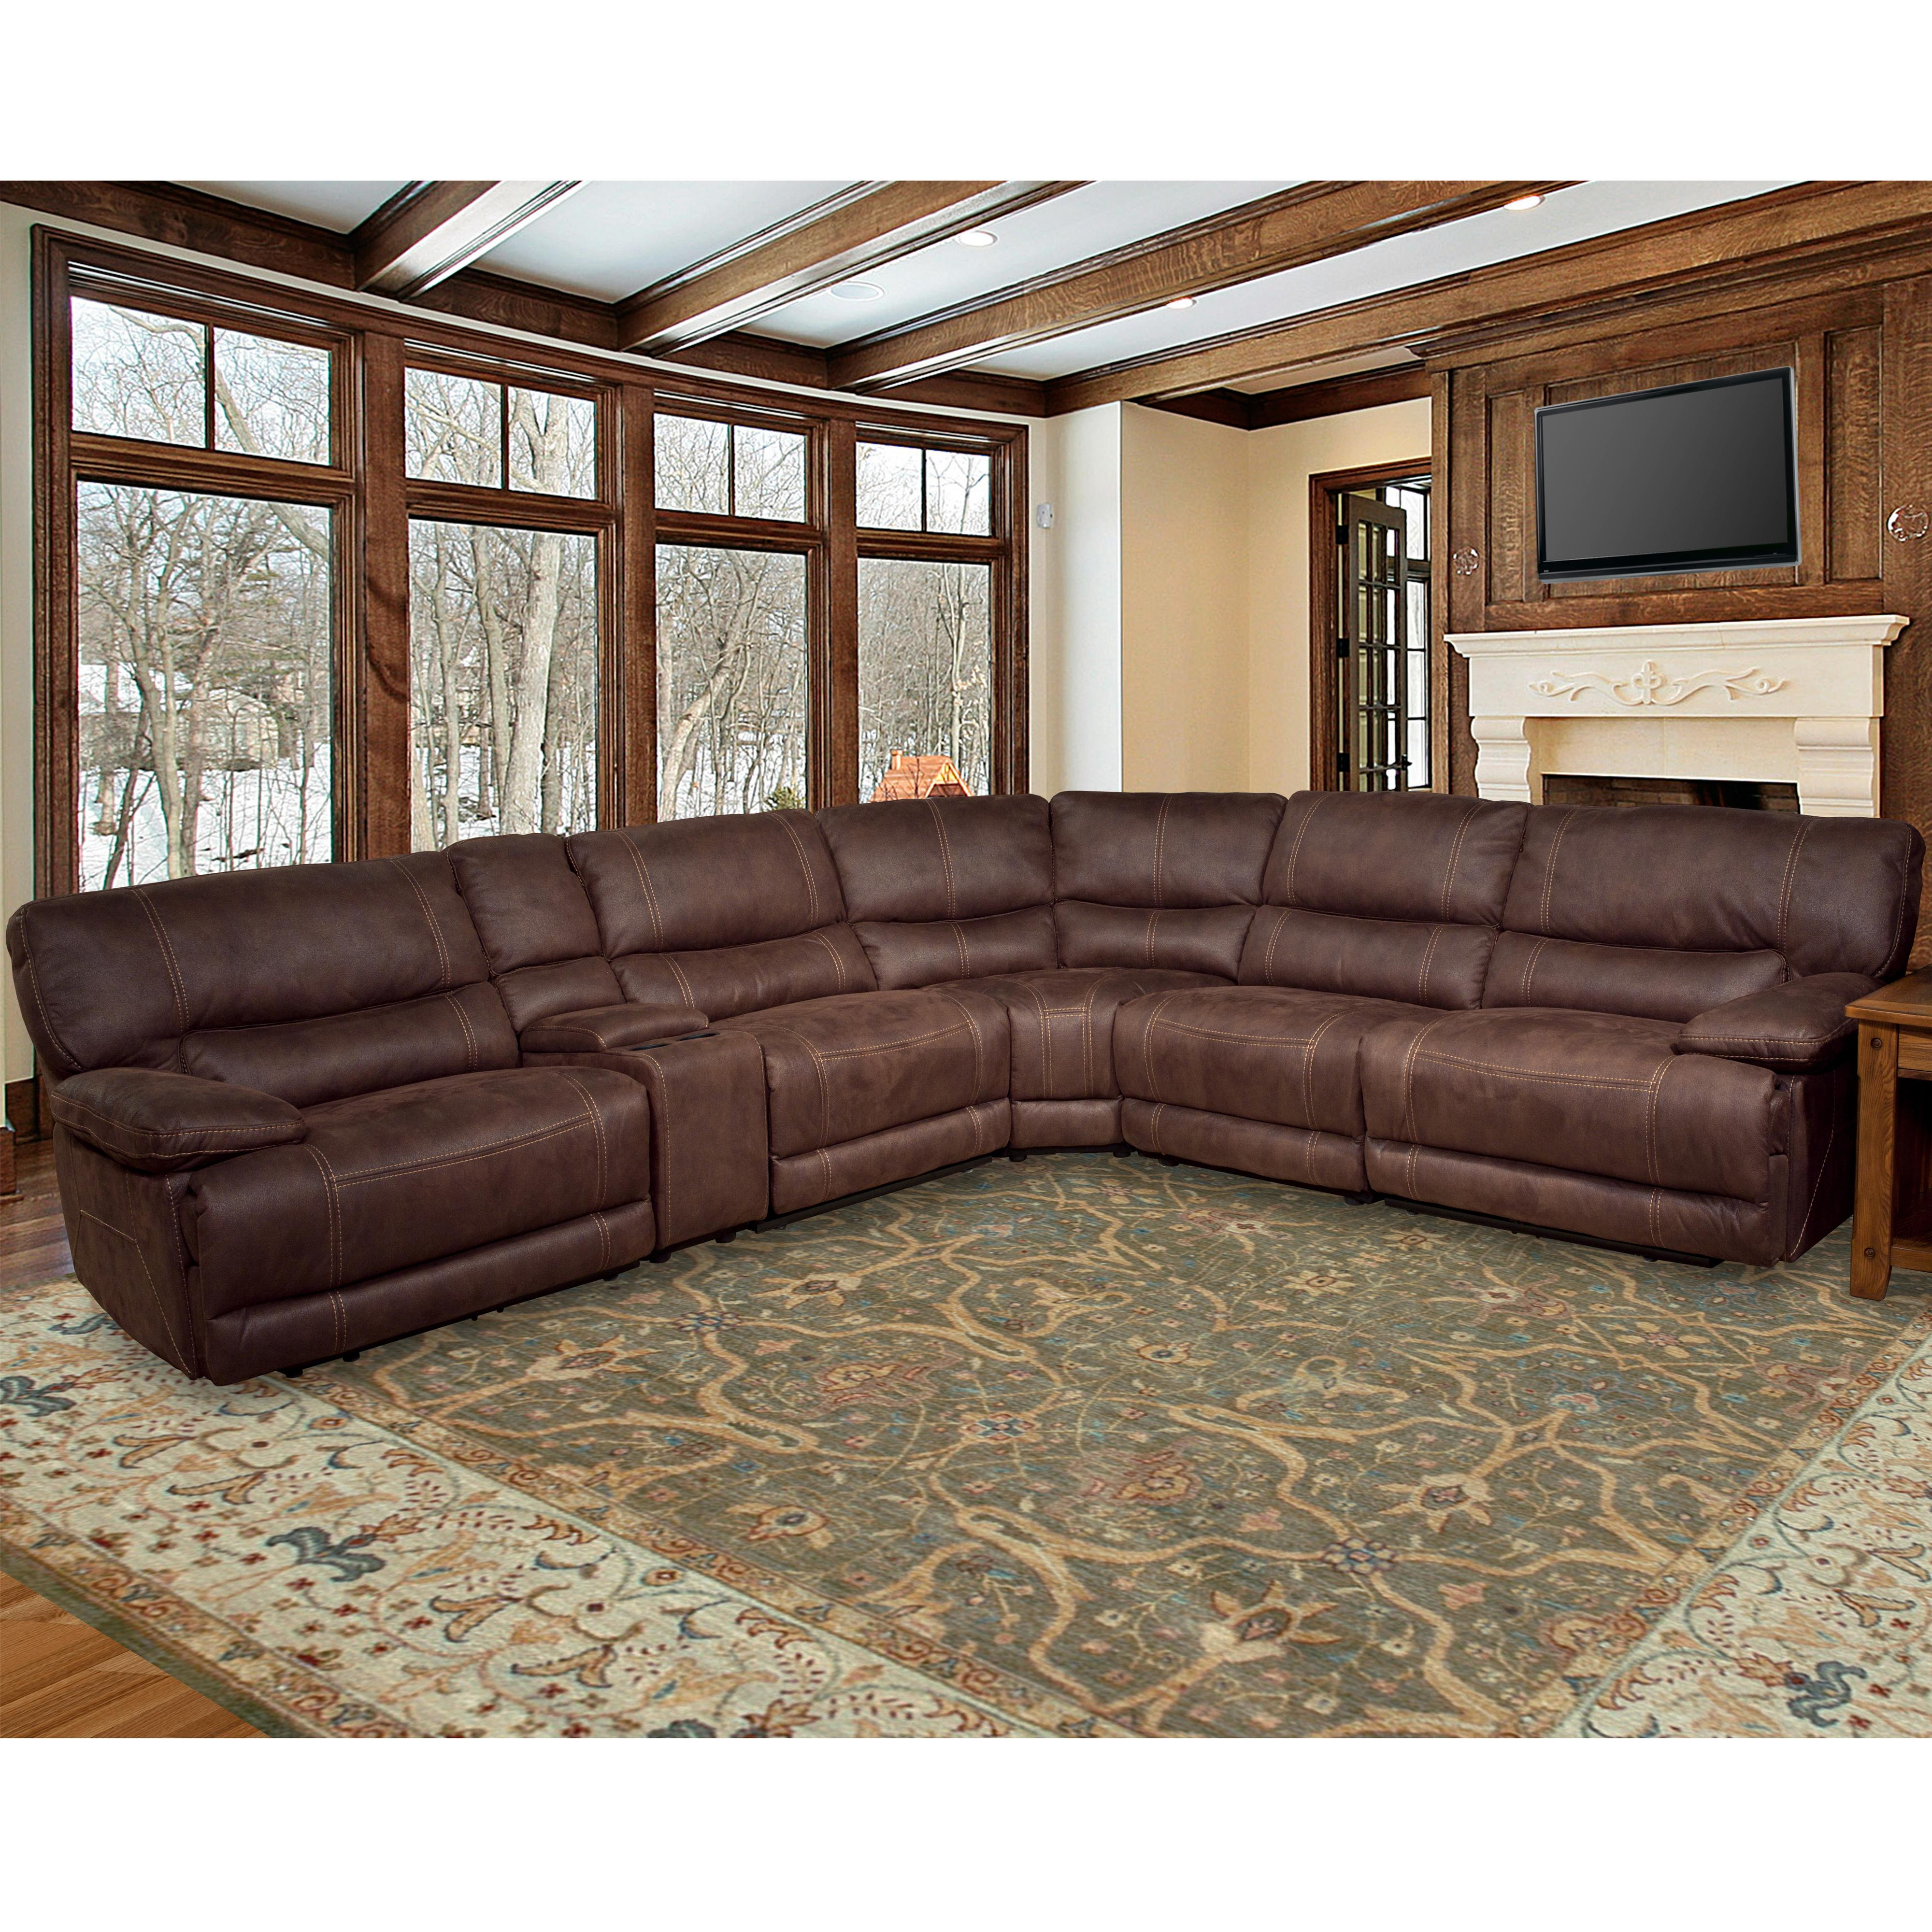 excellent reclining sofa sets image-Fascinating Reclining sofa Sets Pattern